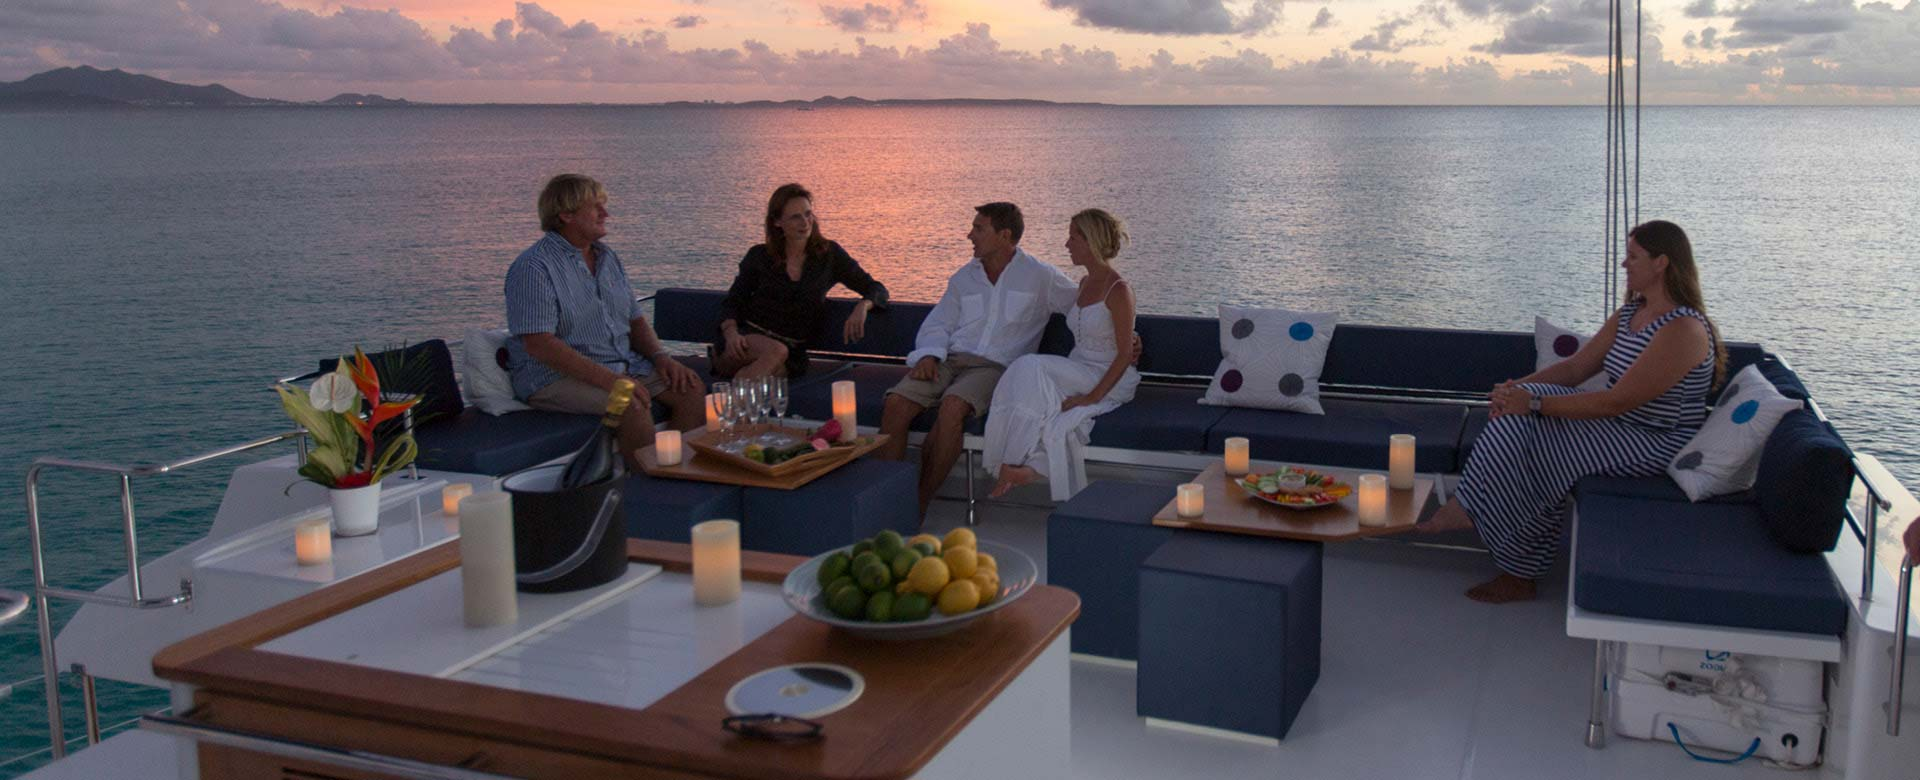 Yacht owners enjoying the sunset